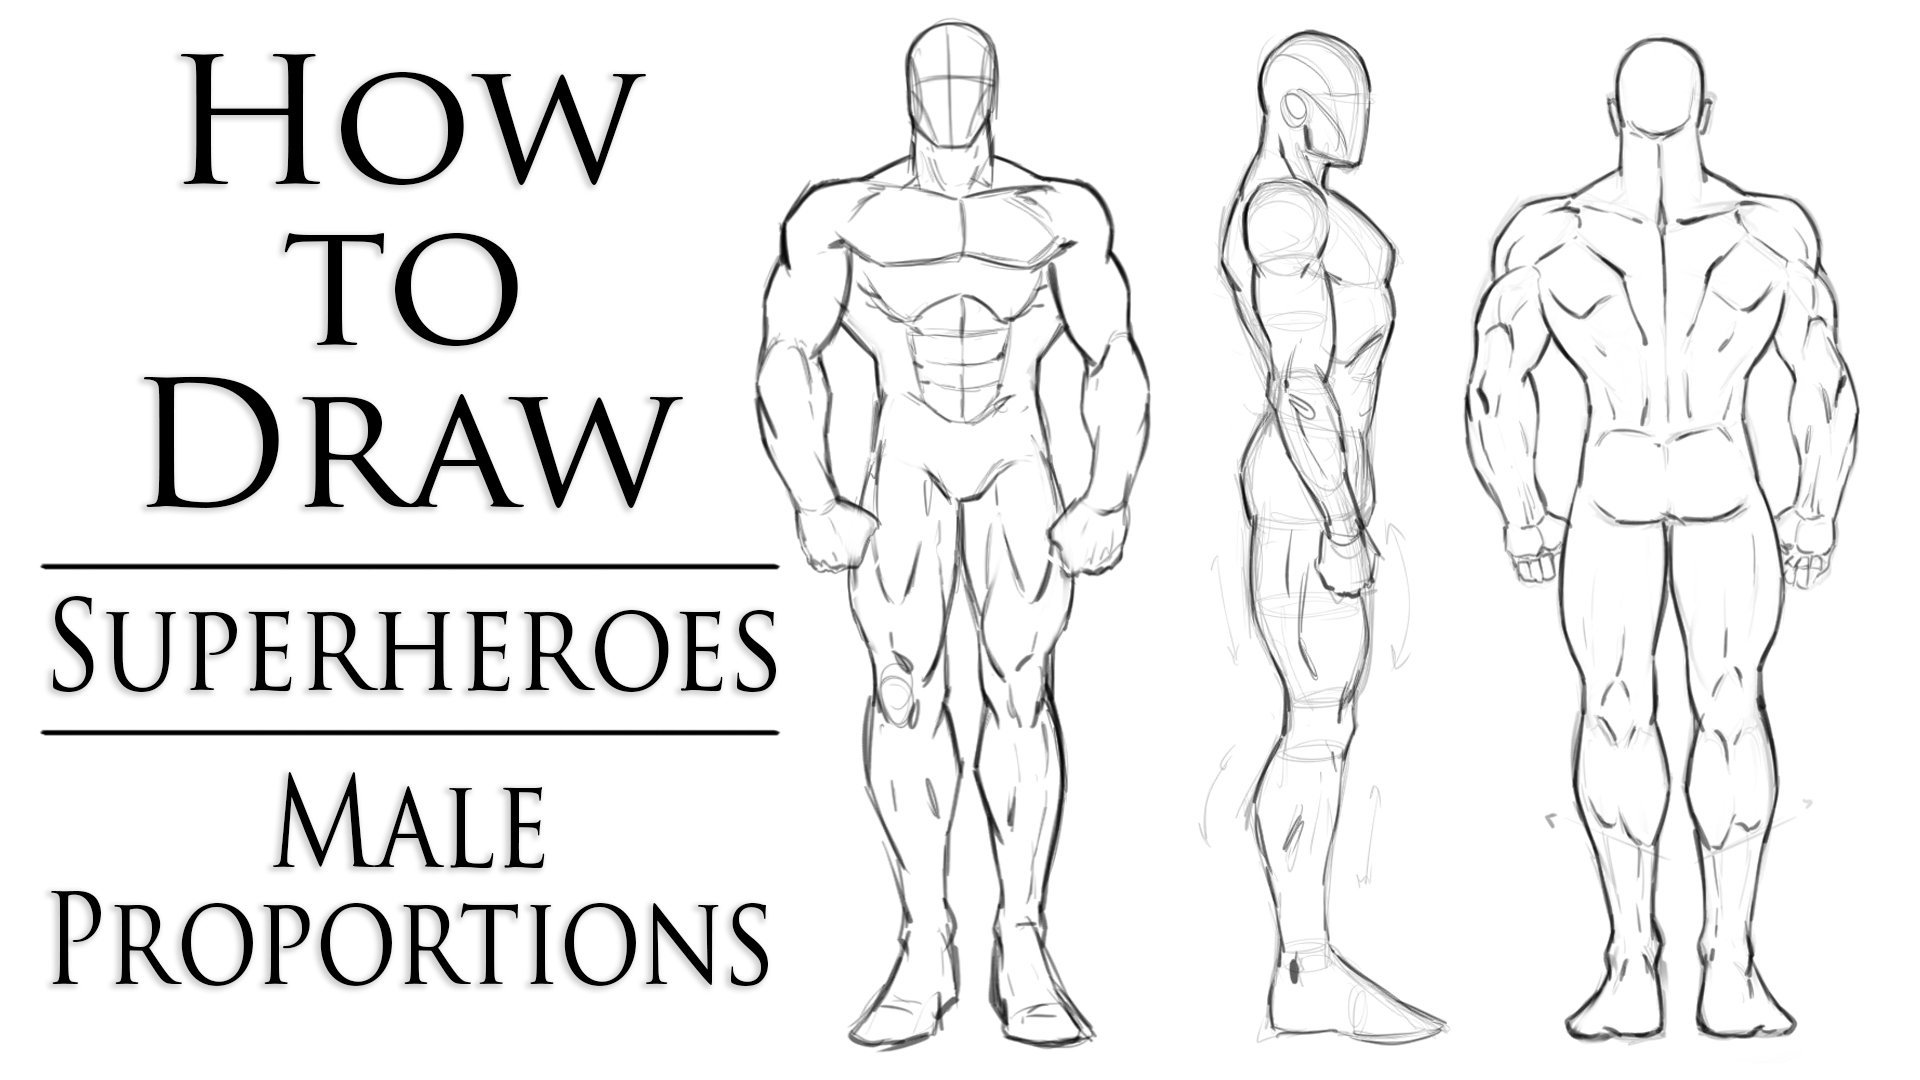 How To Draw Superheroes Male Proportions Robert Marzullo Skillshare